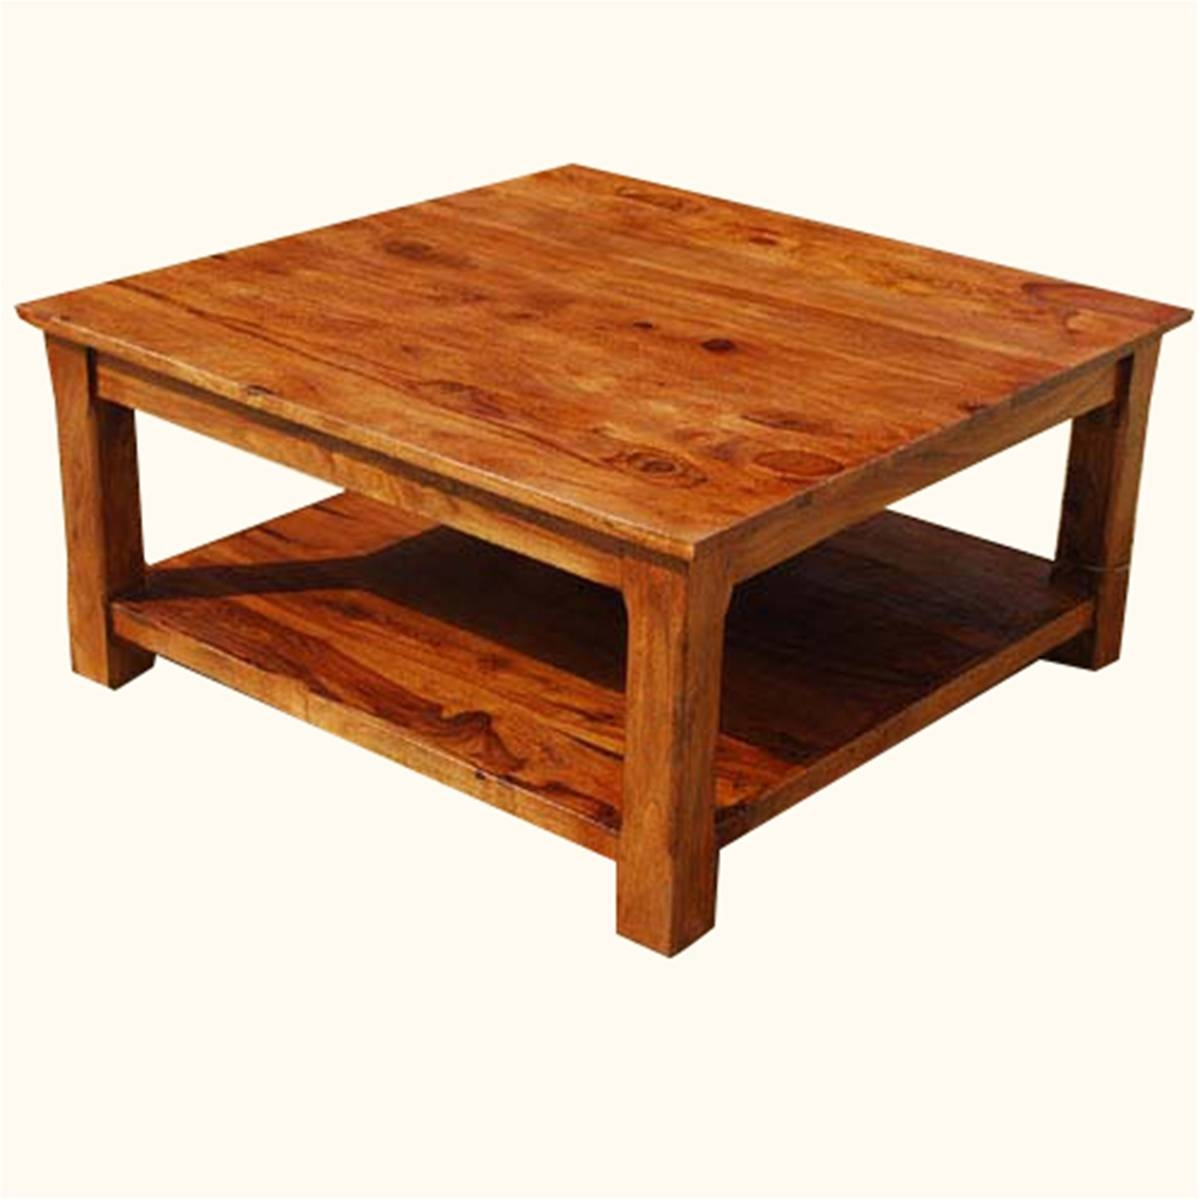 Large Square Solid Wood Coffee Table | Coffee Tables Decoration in Big Square Coffee Tables (Image 27 of 30)